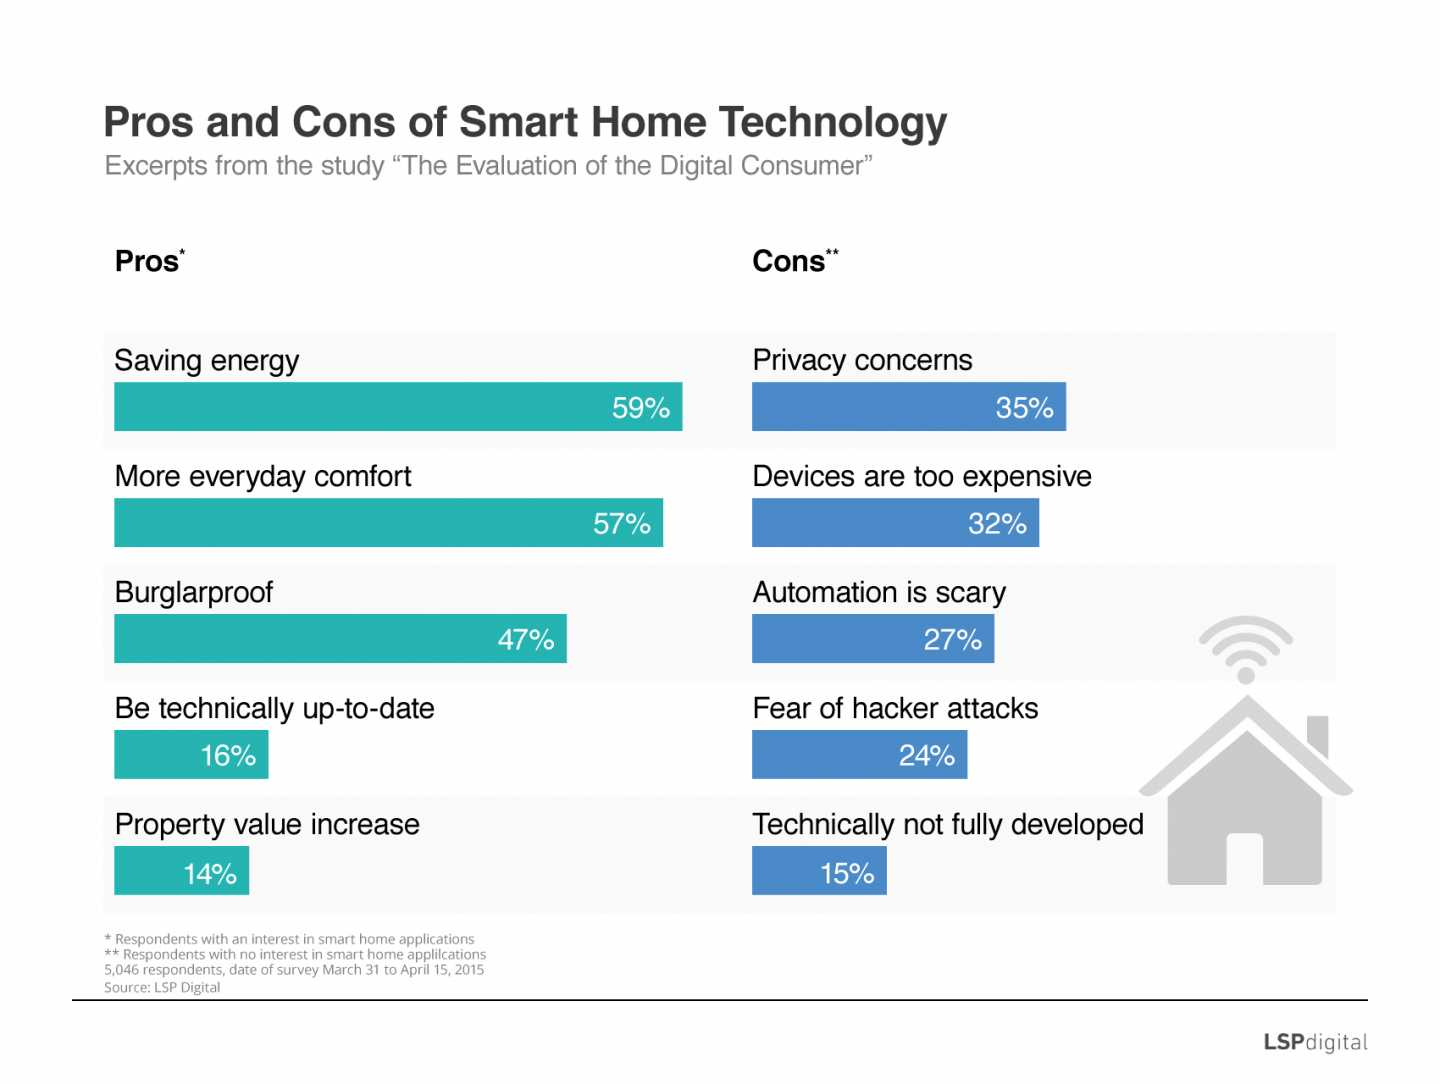 Pros and Cons of Smart Living